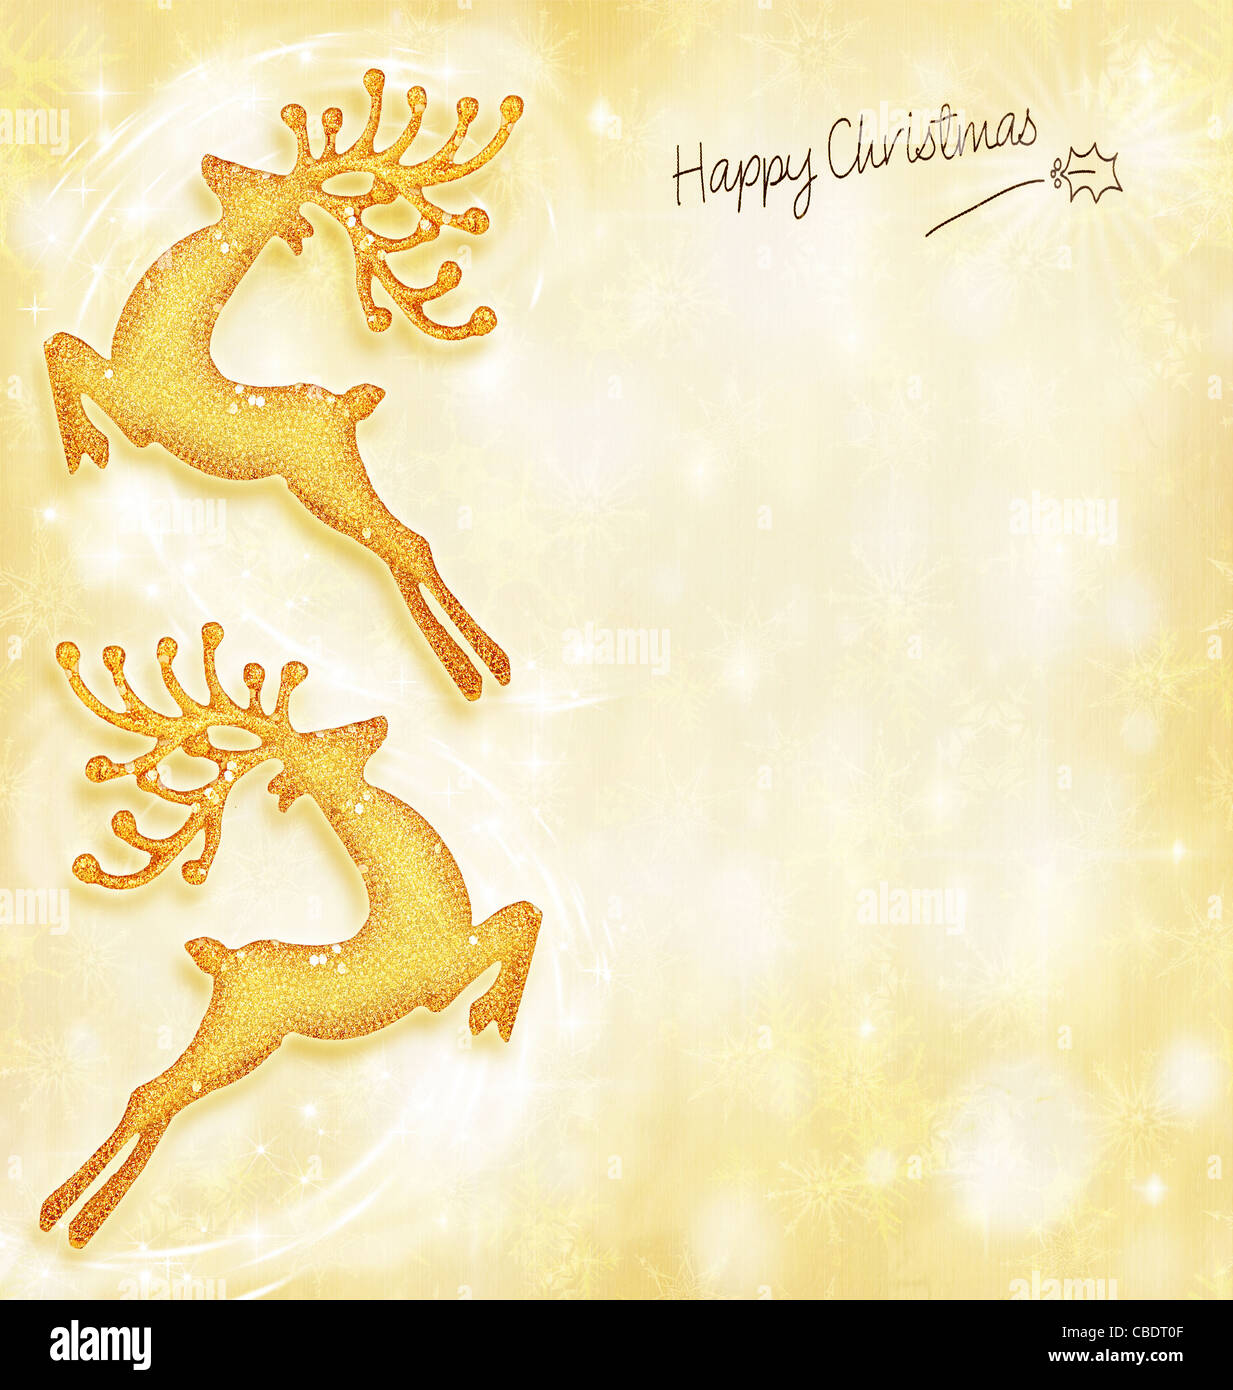 New Year holiday card  golden background  reindeer decorative border     New Year holiday card  golden background  reindeer decorative border   traditional tree ornament  abstract shiny glowing lights